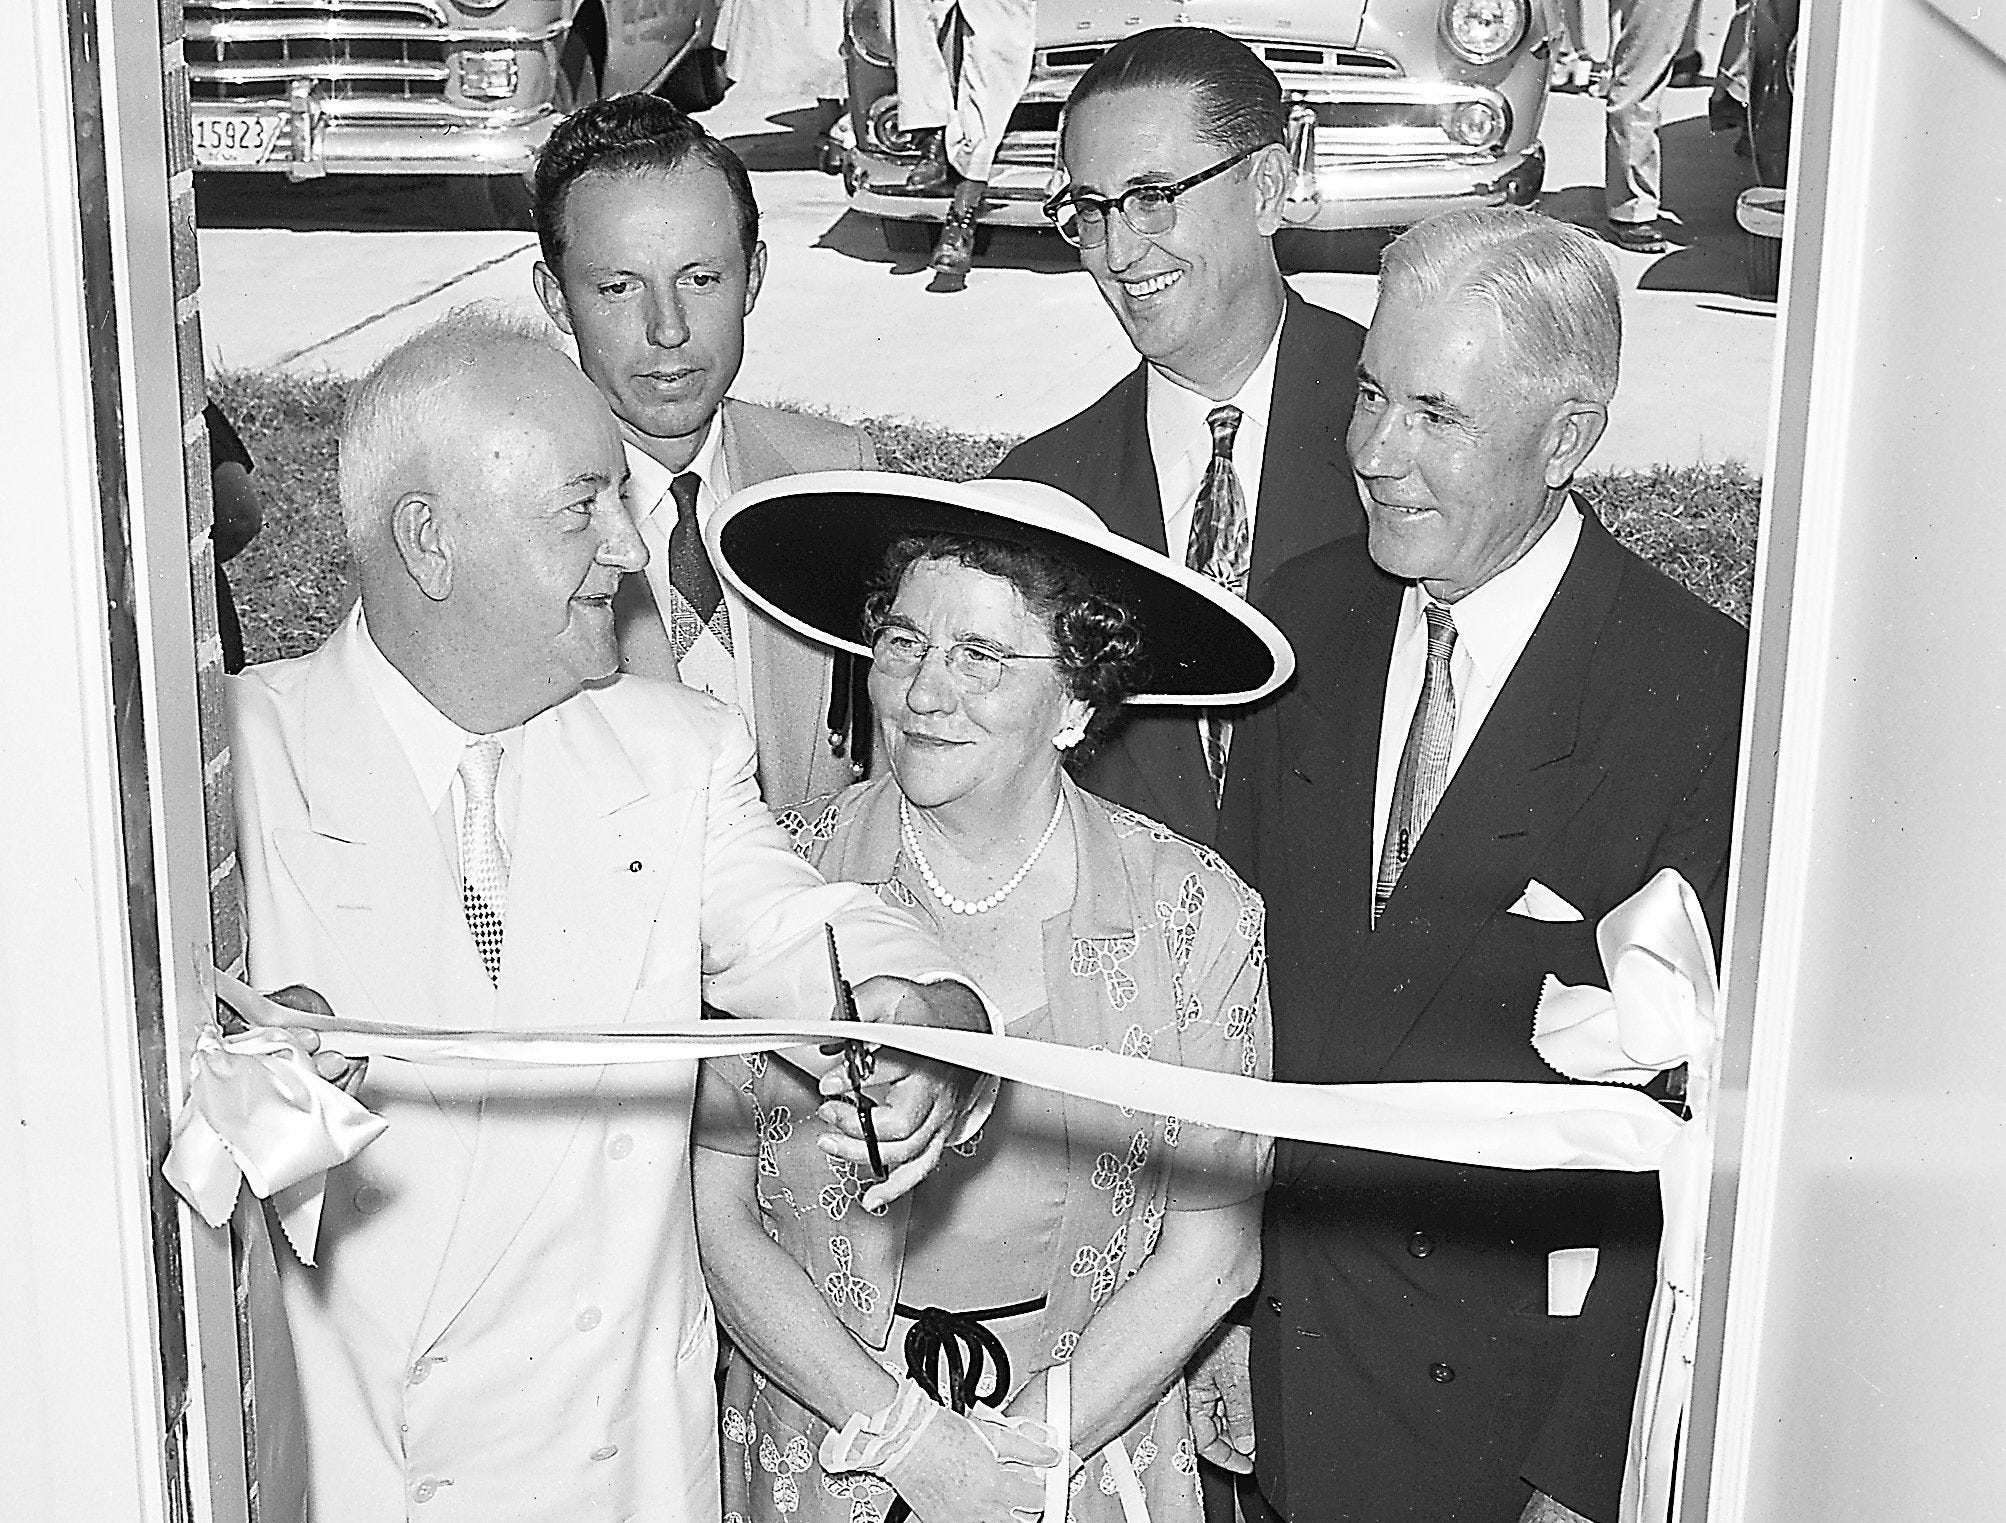 Removing the last barrier standing between 450 families and shining new homes, Mayor Frank Tobey, left, cut the satin ribbon tied across the entrance to one of the apartments at the Dr. H.P. Hurt village in official ceremonies in August 1953. Watching the ribbon-cutting, which also began a week-long open house at the Jackson and Thomas development were Charles D. Akers Jr., second left, president of the Memphis Retail Furniture Dealers Association; Mrs. H.P. Hurt, widow of the Baptist minister for whom the village was named; Orelle L. Ledbetter, second right, assistant housing director for management of the Memphis Housing Authority and Dr. L.M. Graves, MHA vice chairman.